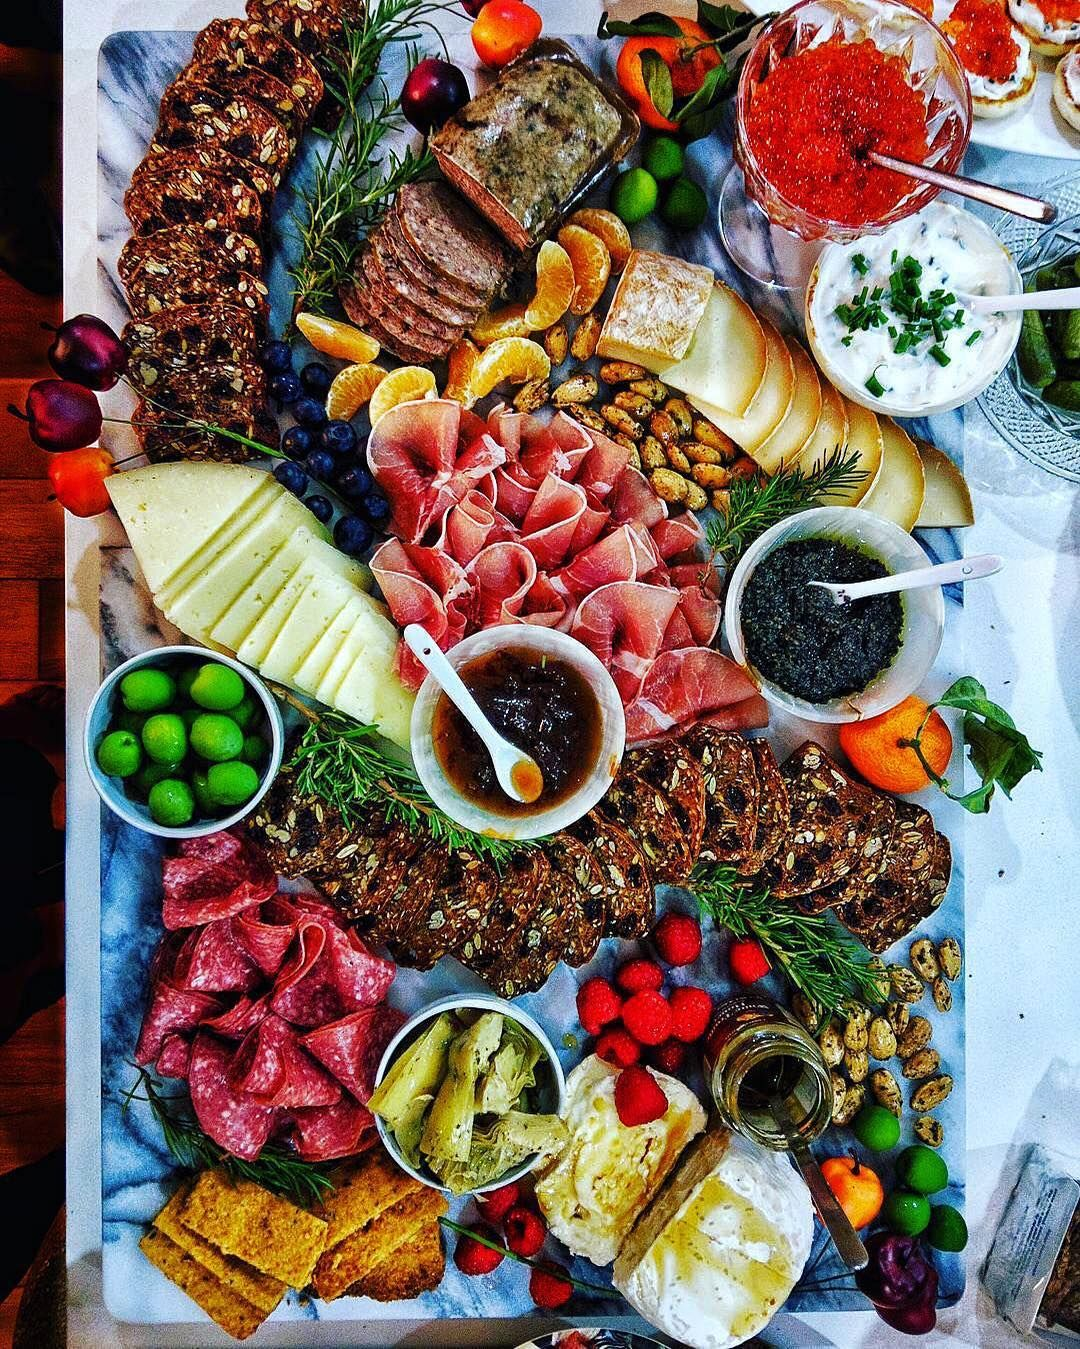 Truly Nothing Beats A Good Charcuterie And Cheese Board Paired With A Glass Of Wine Thanks For Th Charcuterie And Cheese Board Food Platters Vegetable Platter